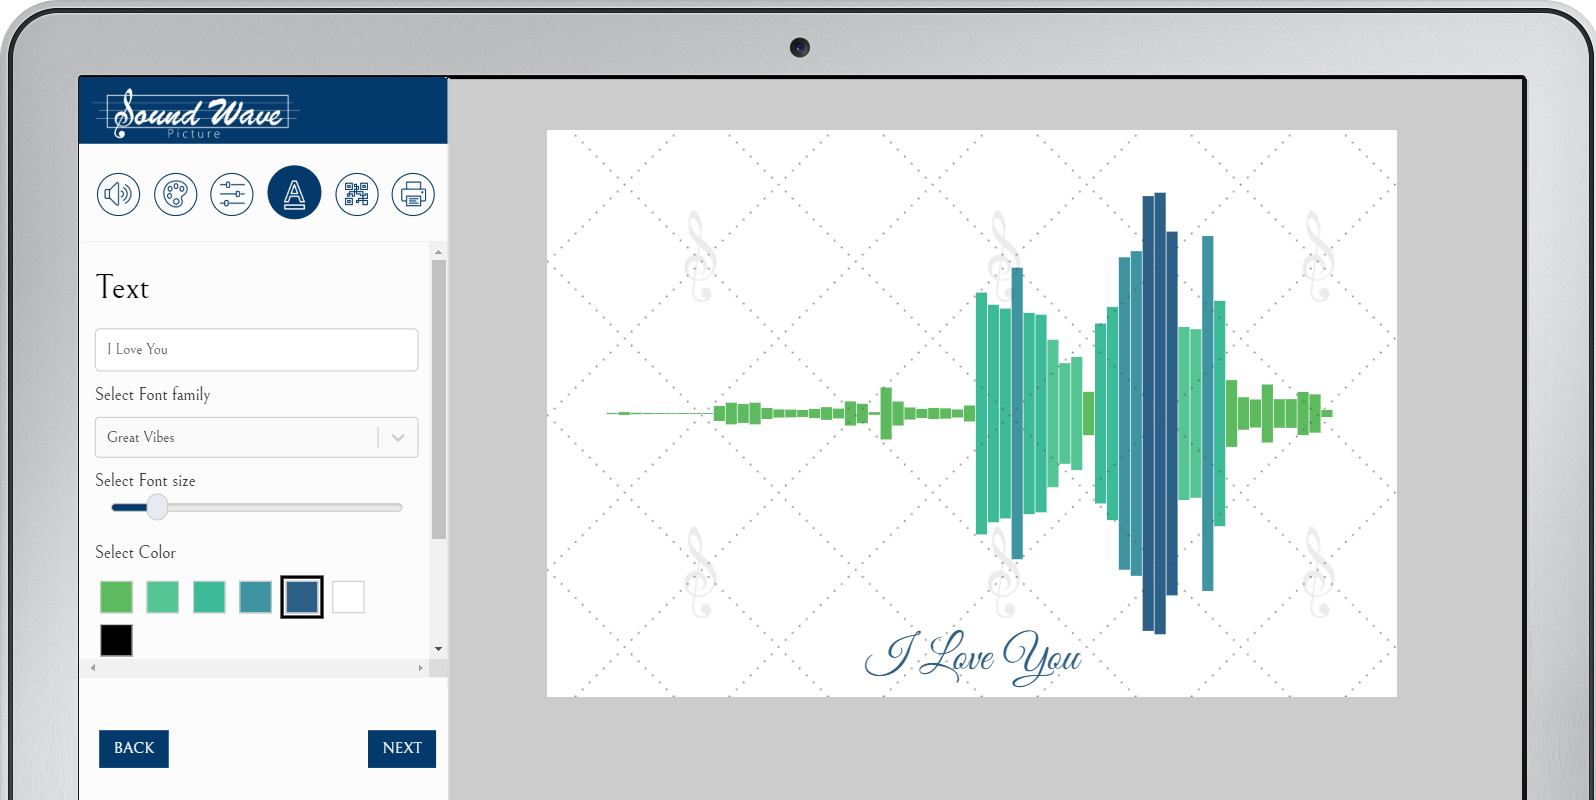 Sound Wave Art | Turn your voice into an amazing artwork!